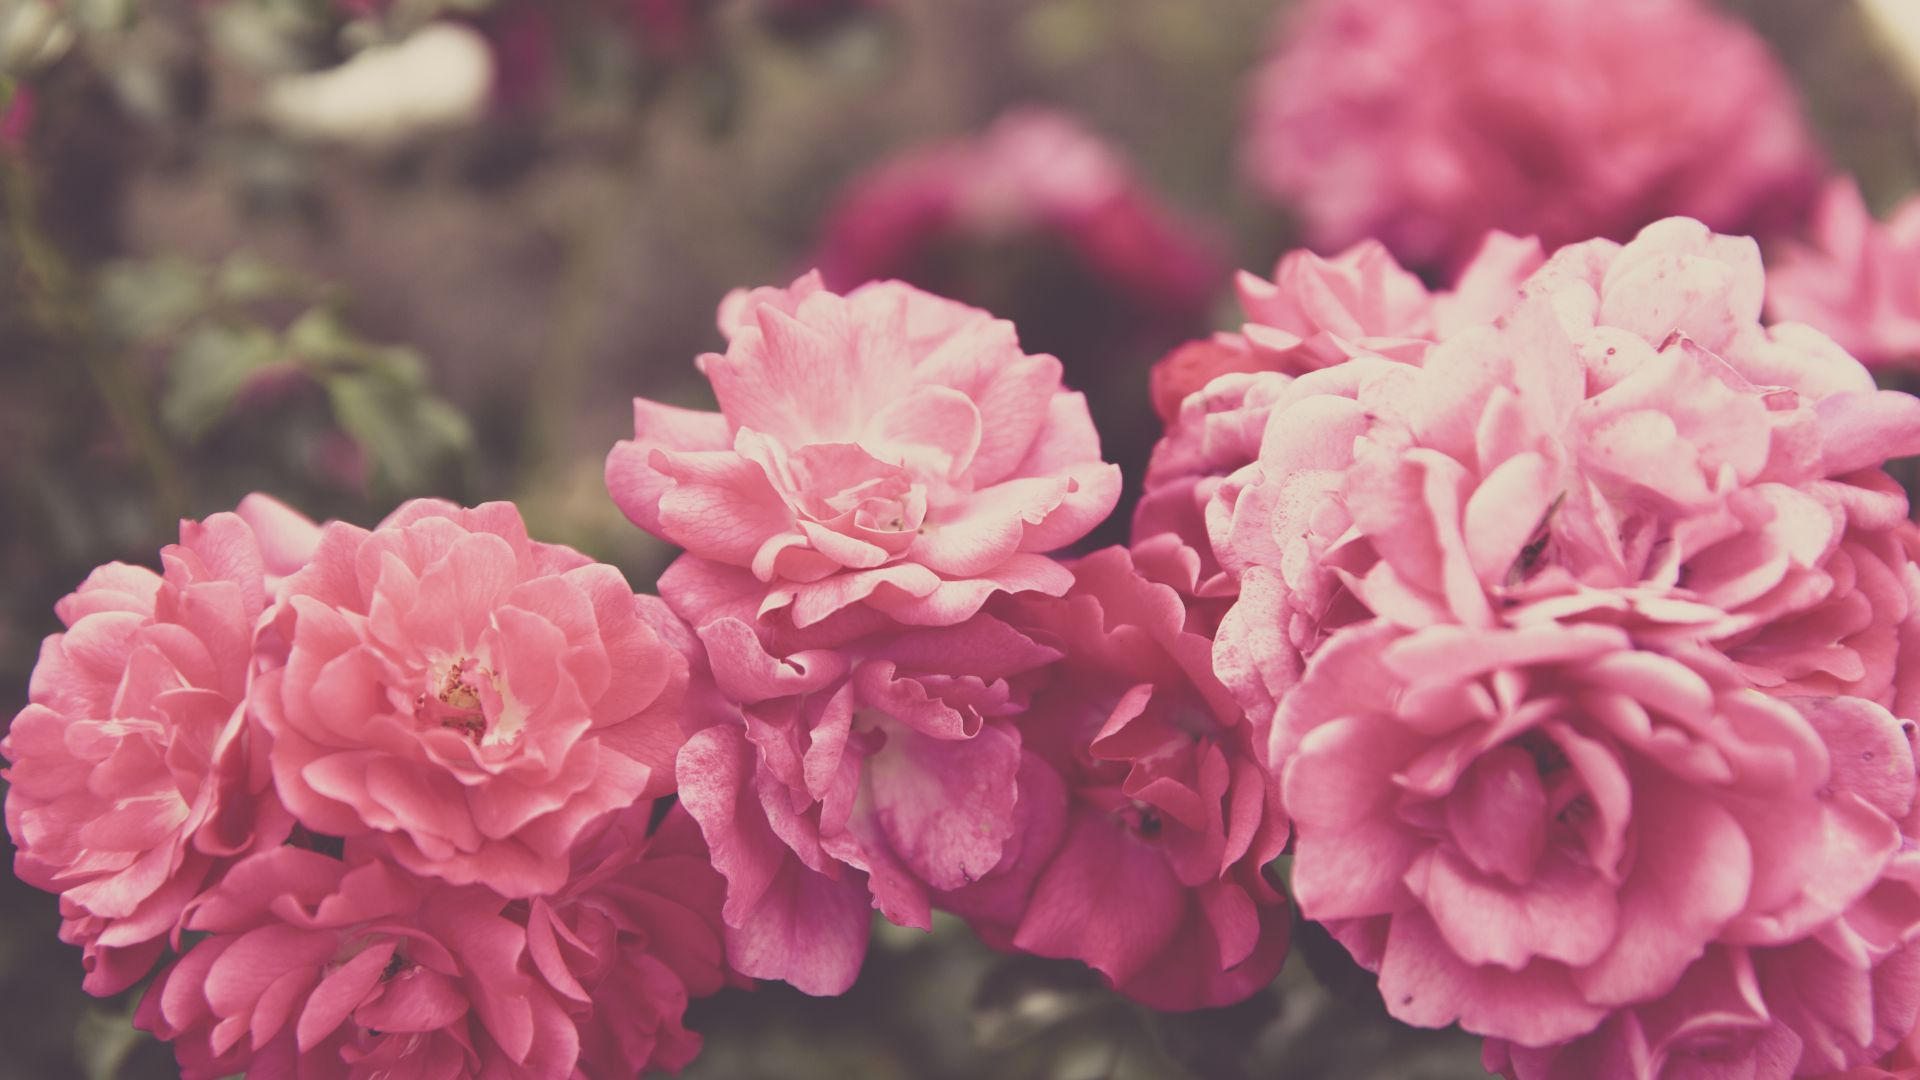 Розы, 4k, 5k, цветы, розовый, Roses, 4k, 5k wallpaper, 8k, flowers, pink (horizontal)